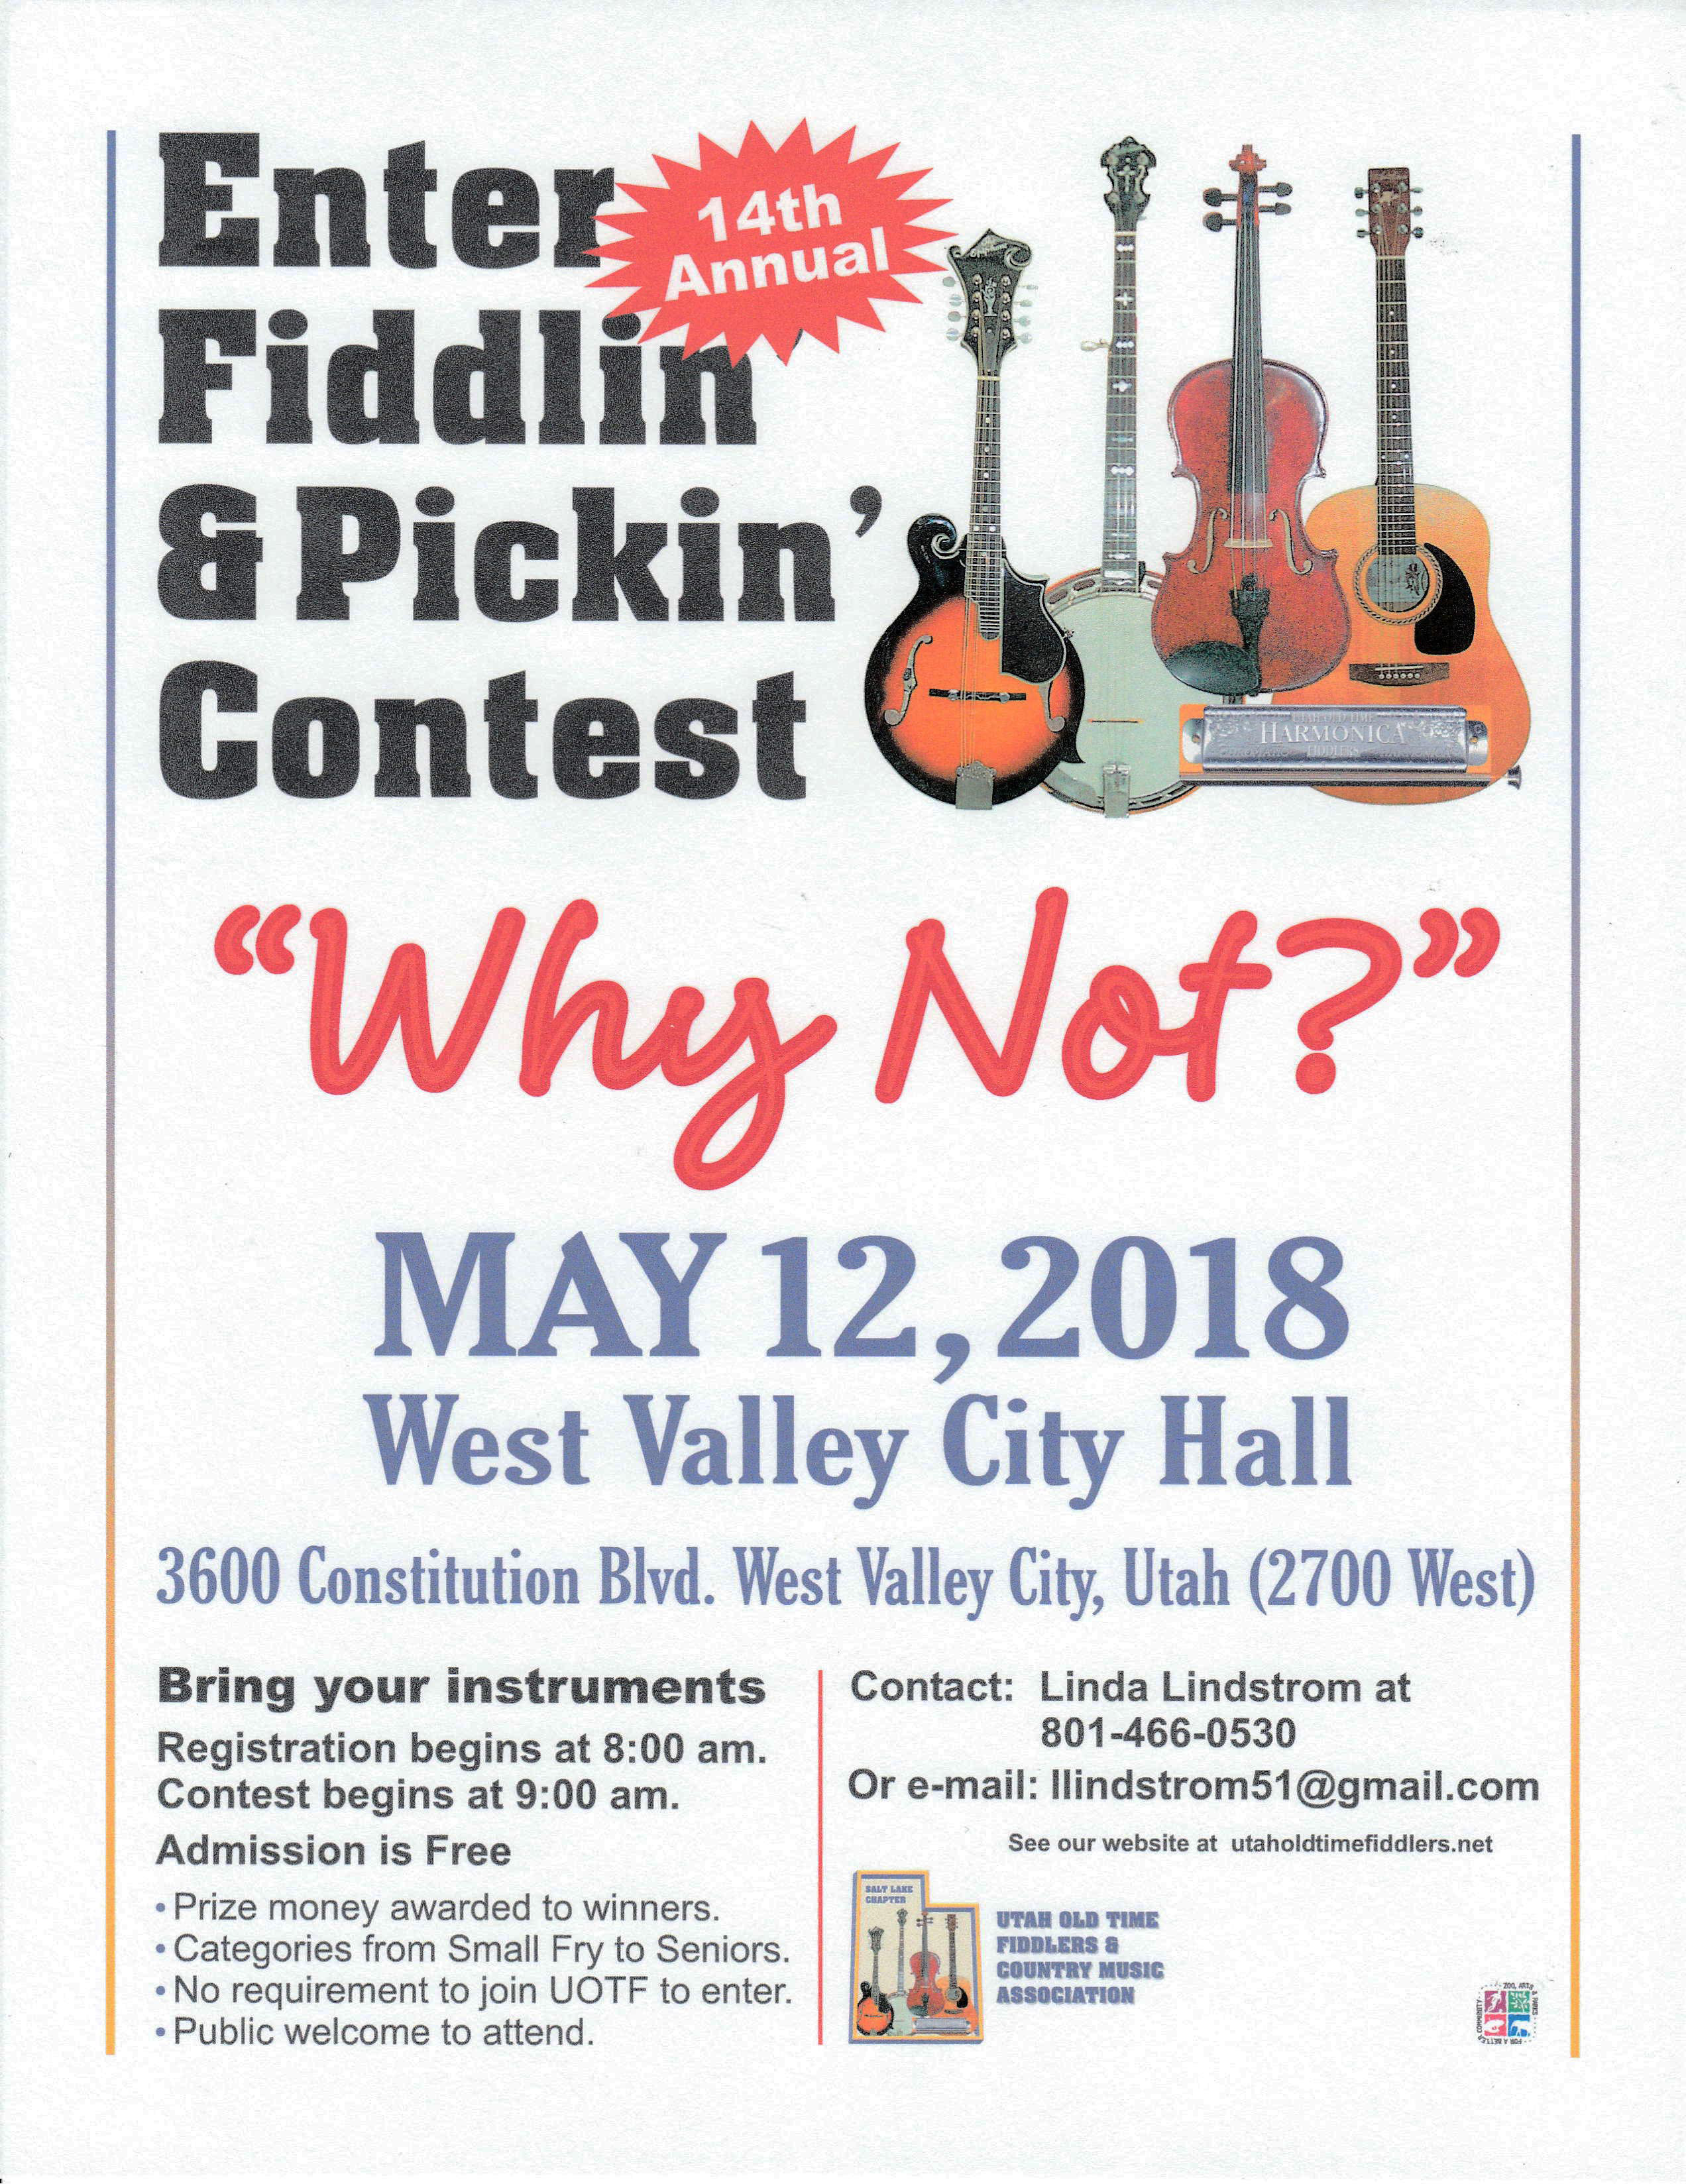 Salt Lake Fiddlin' & Pickin' Contest Poster